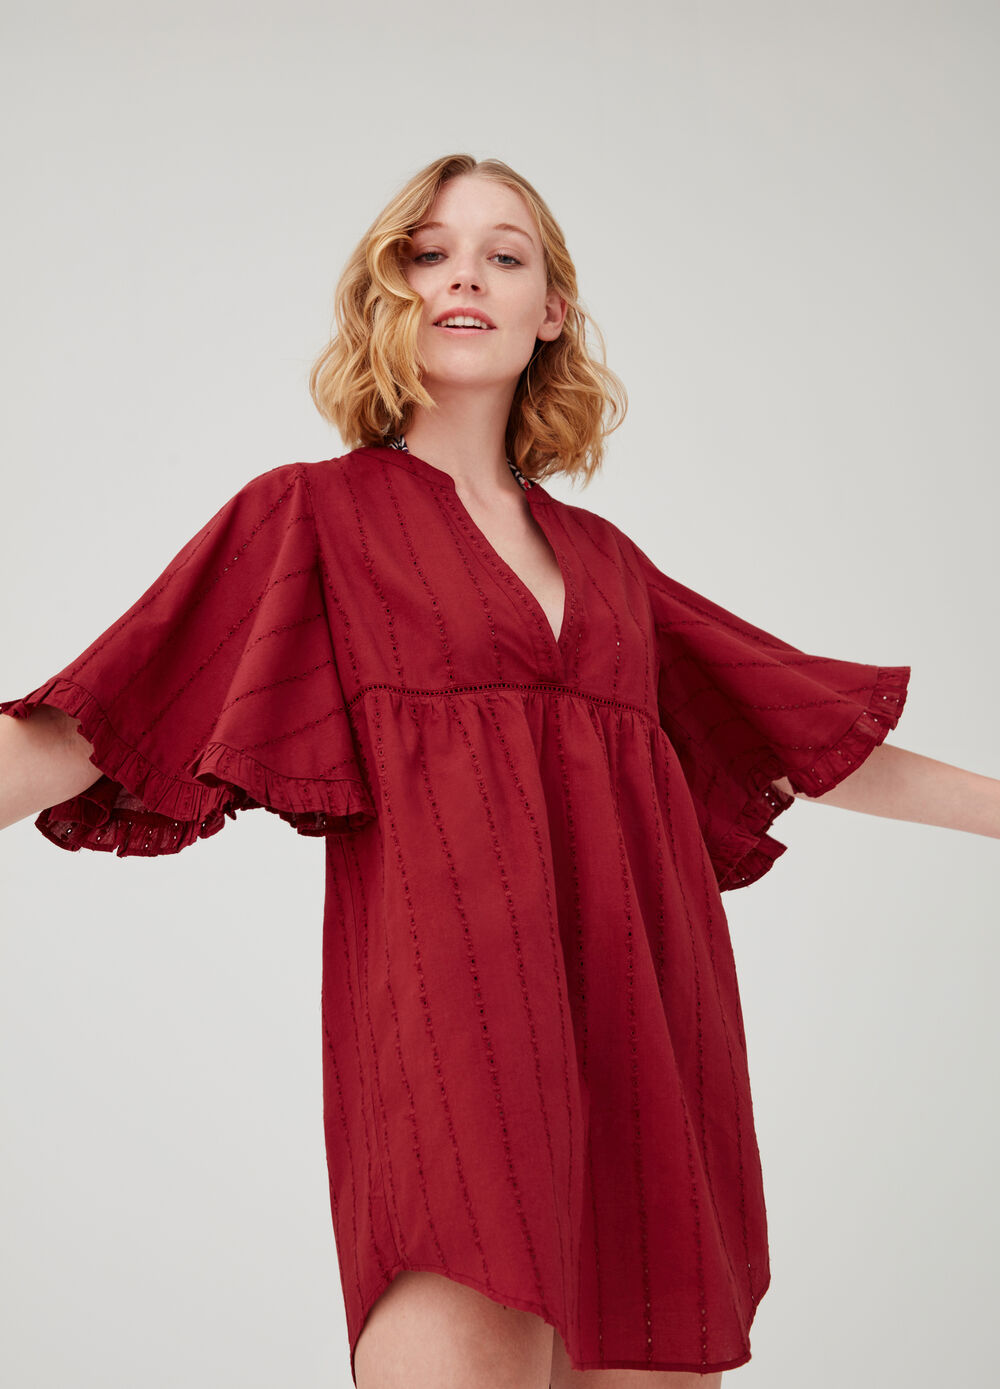 Woven openwork beach cover-up with V neck